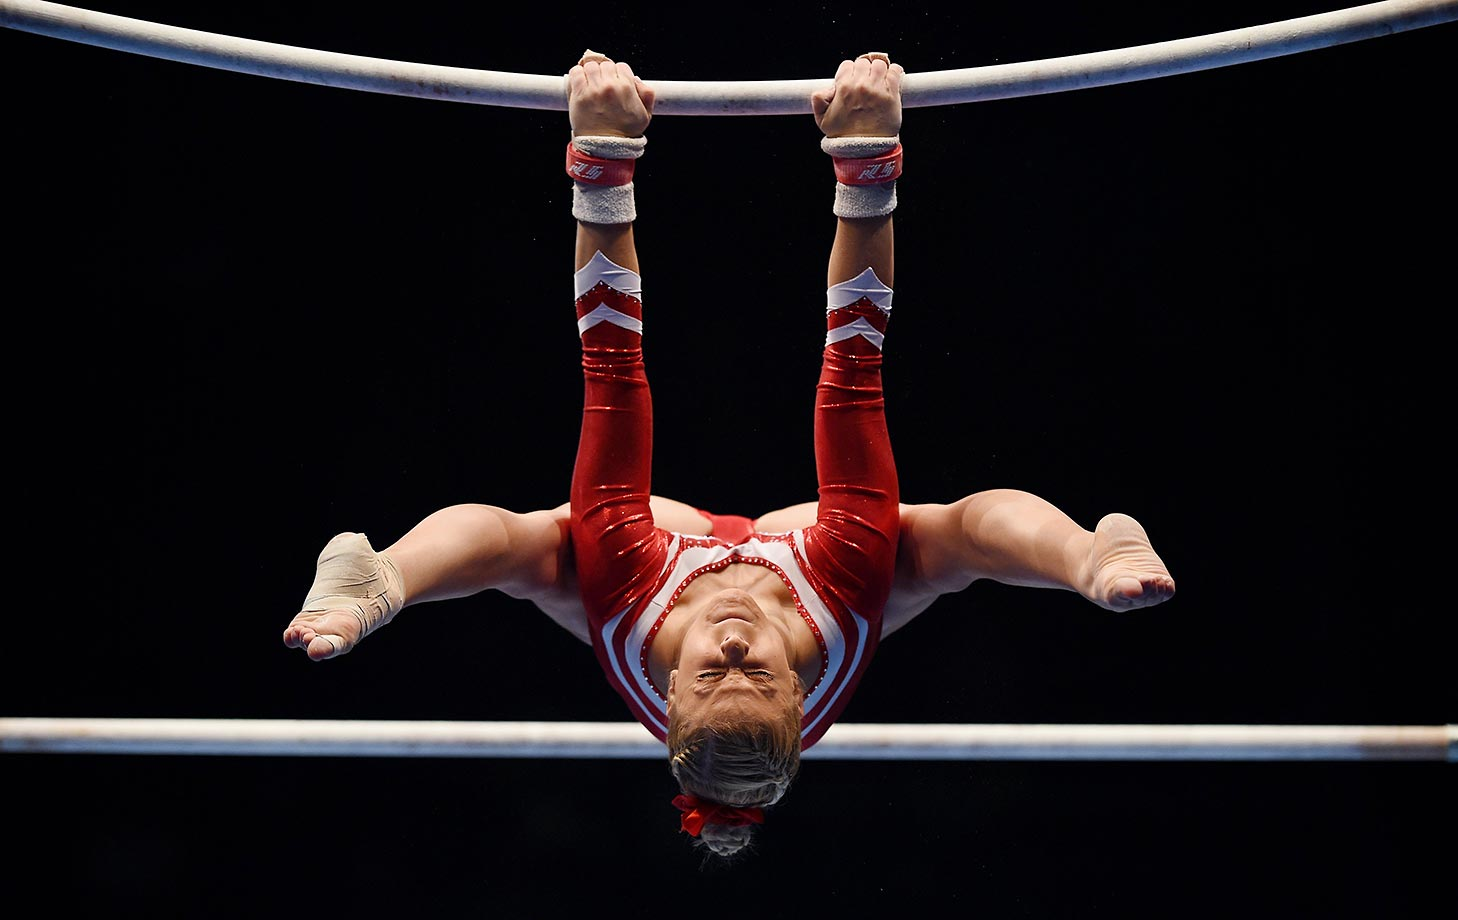 Elisabeth Seitz competes in the Uneven Bar during the DTL Finals in Karlsruhe, Germany.